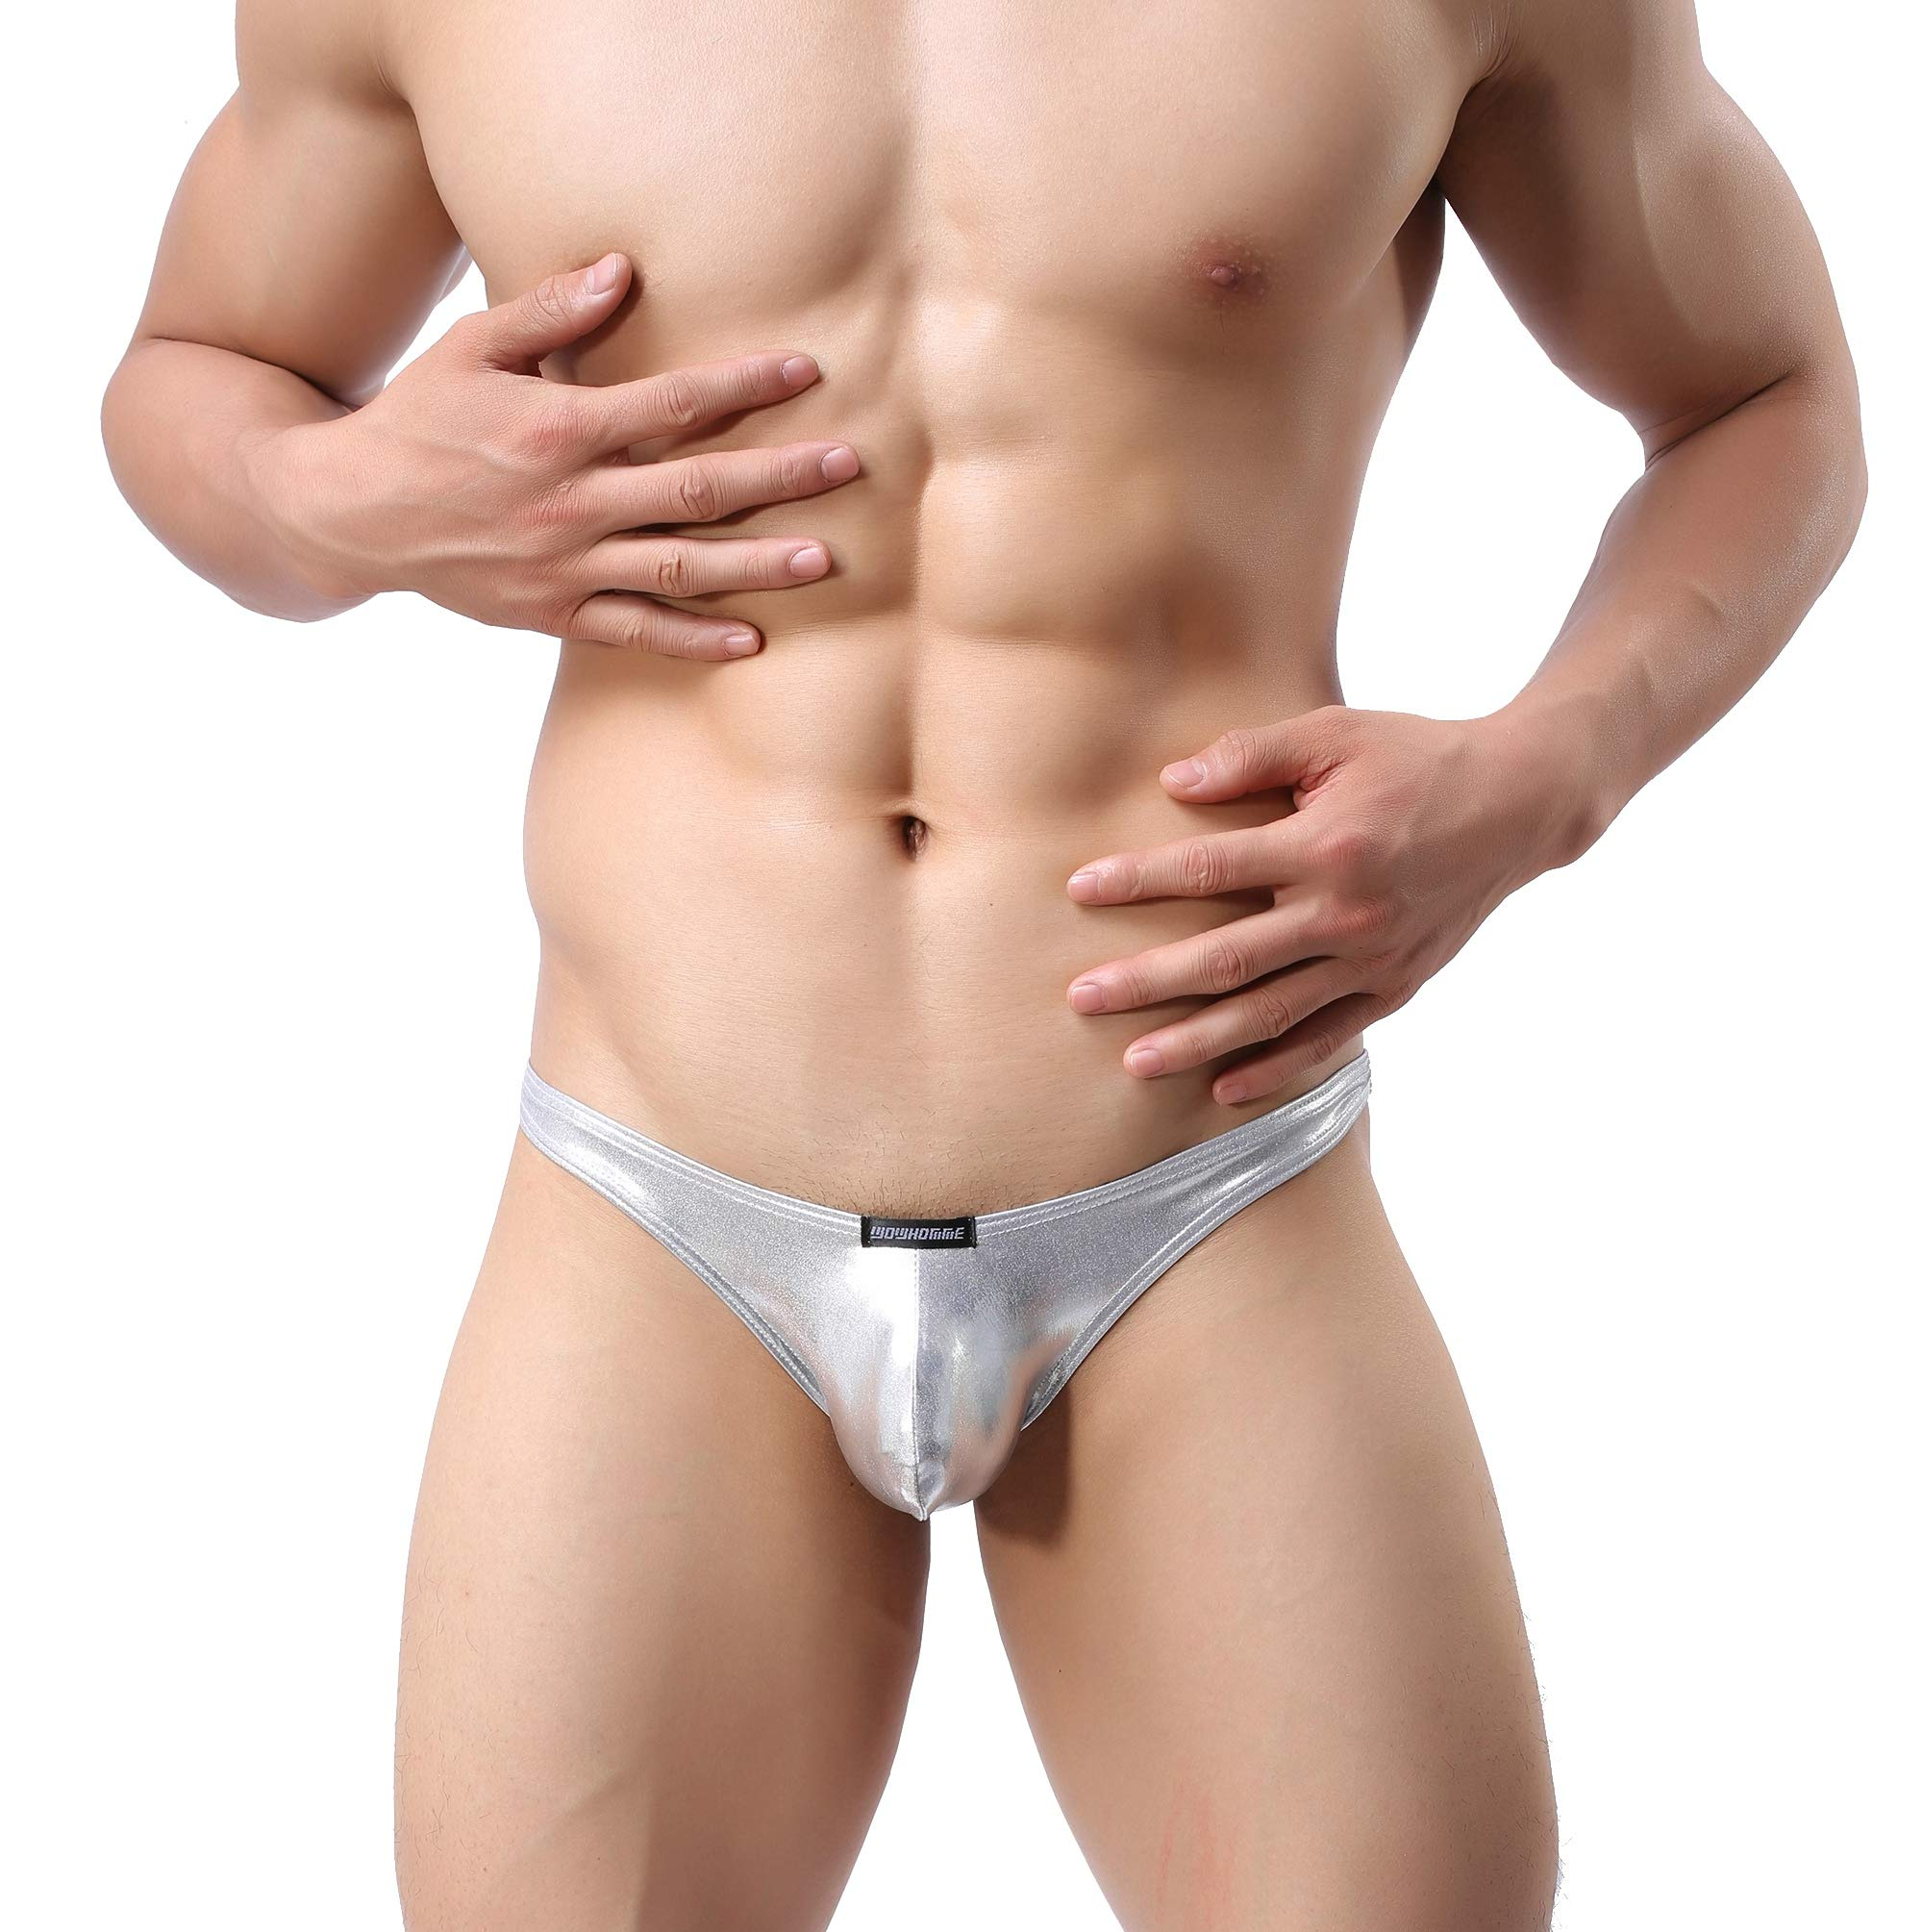 MuscleMate Super Hot Men's Thong Comfort Underwear, Low Raise Thong Underwear (M, Silver)